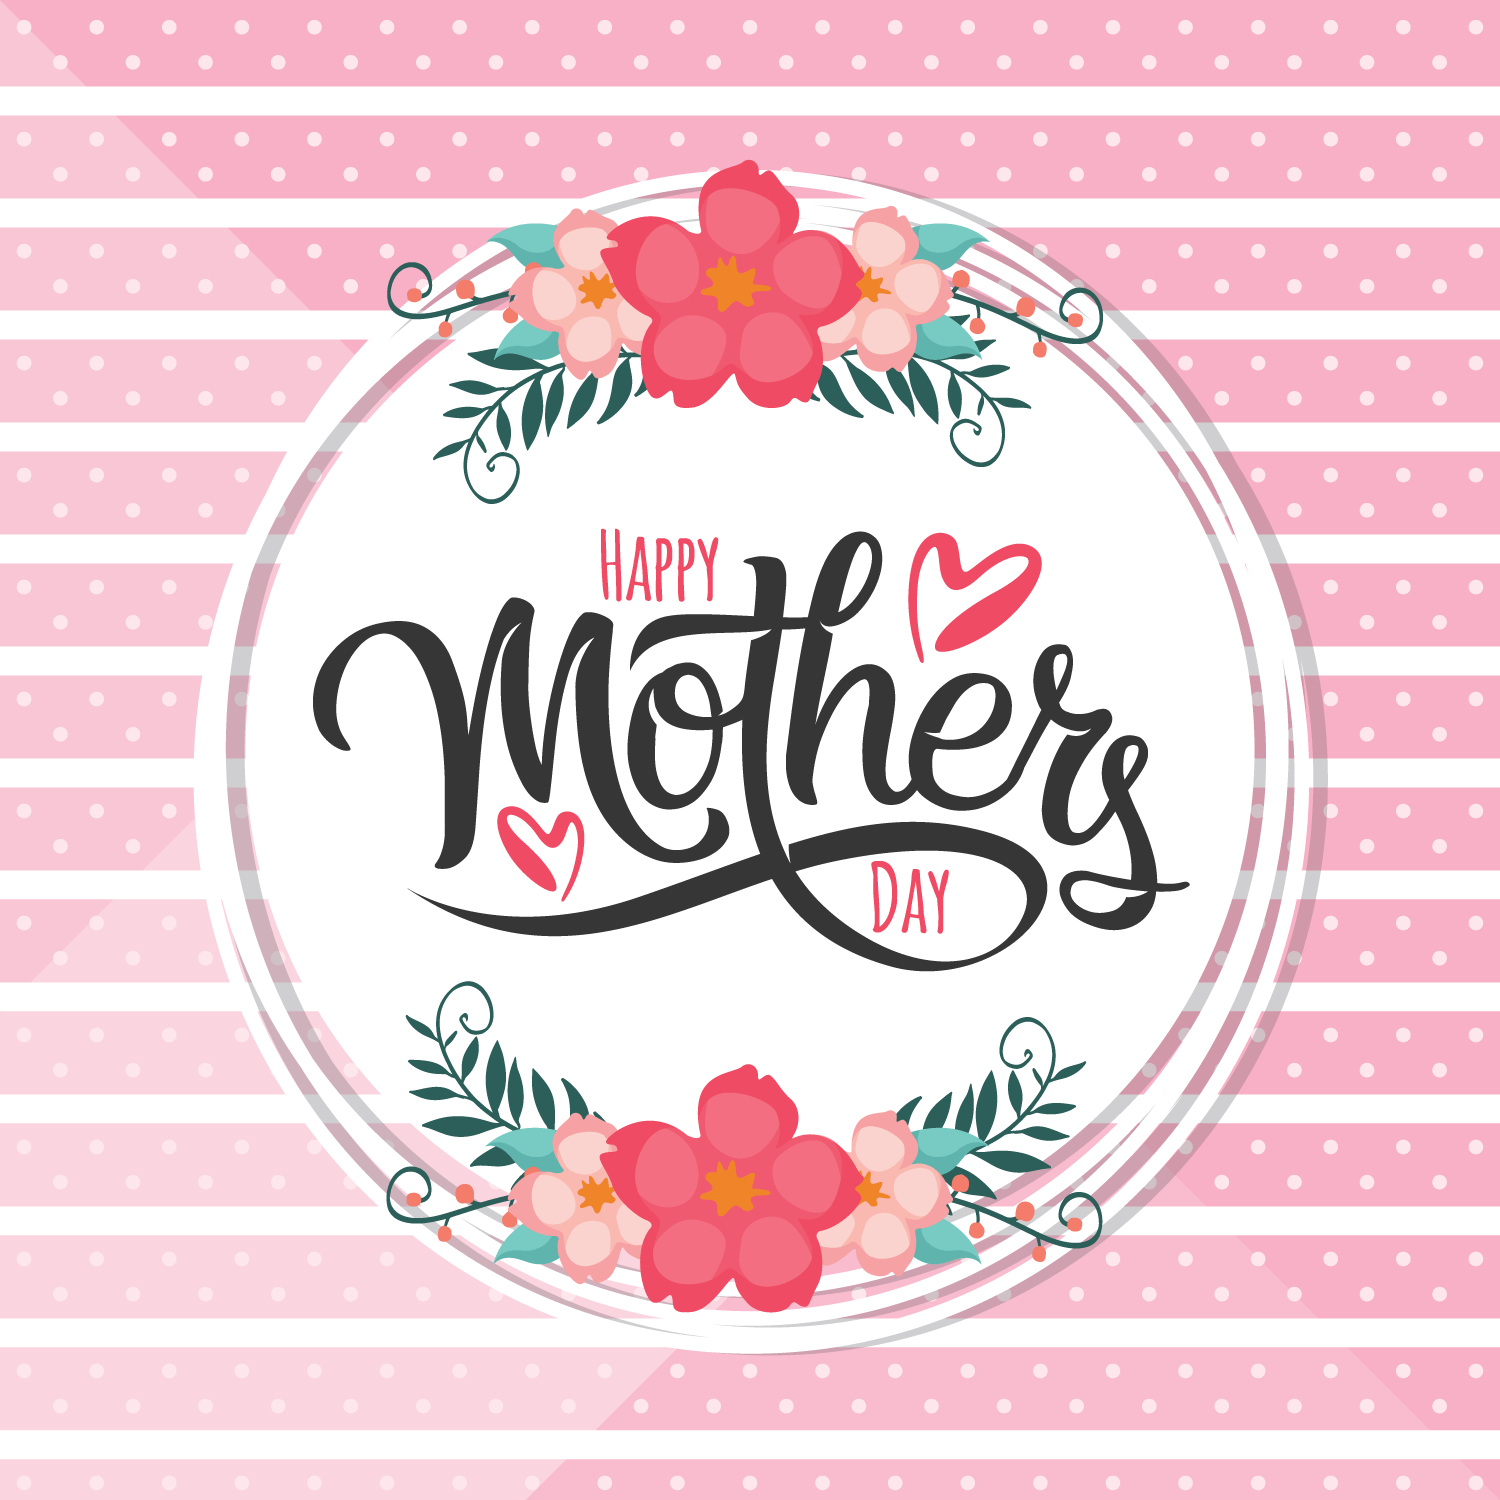 hight resolution of happy mothers day card download free vector art stock graphics images